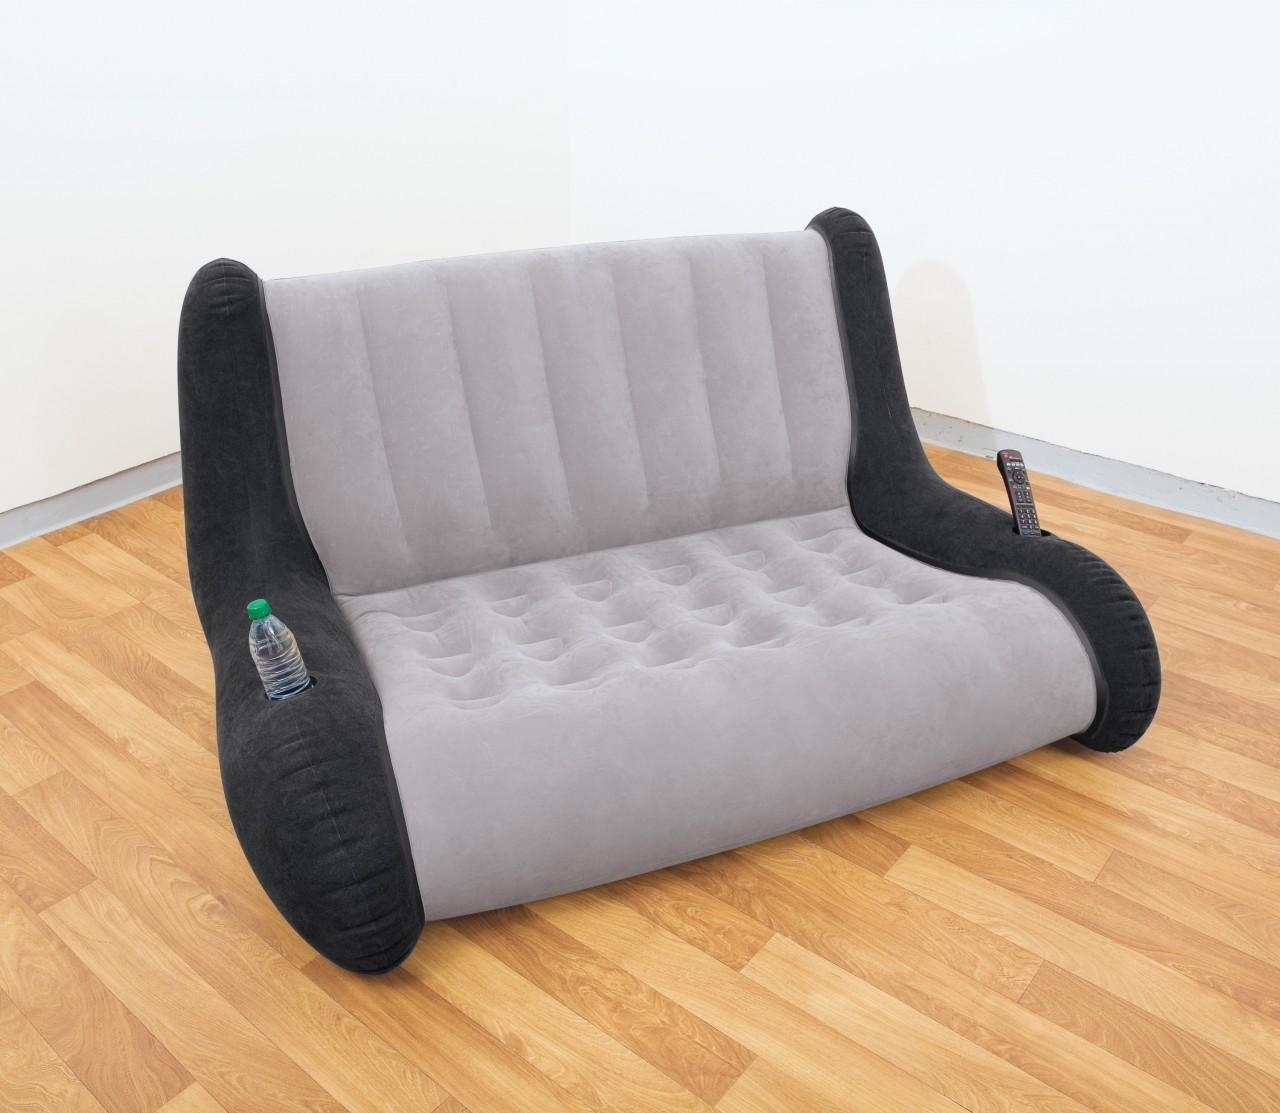 Intex Inflatable Sofa Lounge For Intex Inflatable Sofas (View 12 of 20)